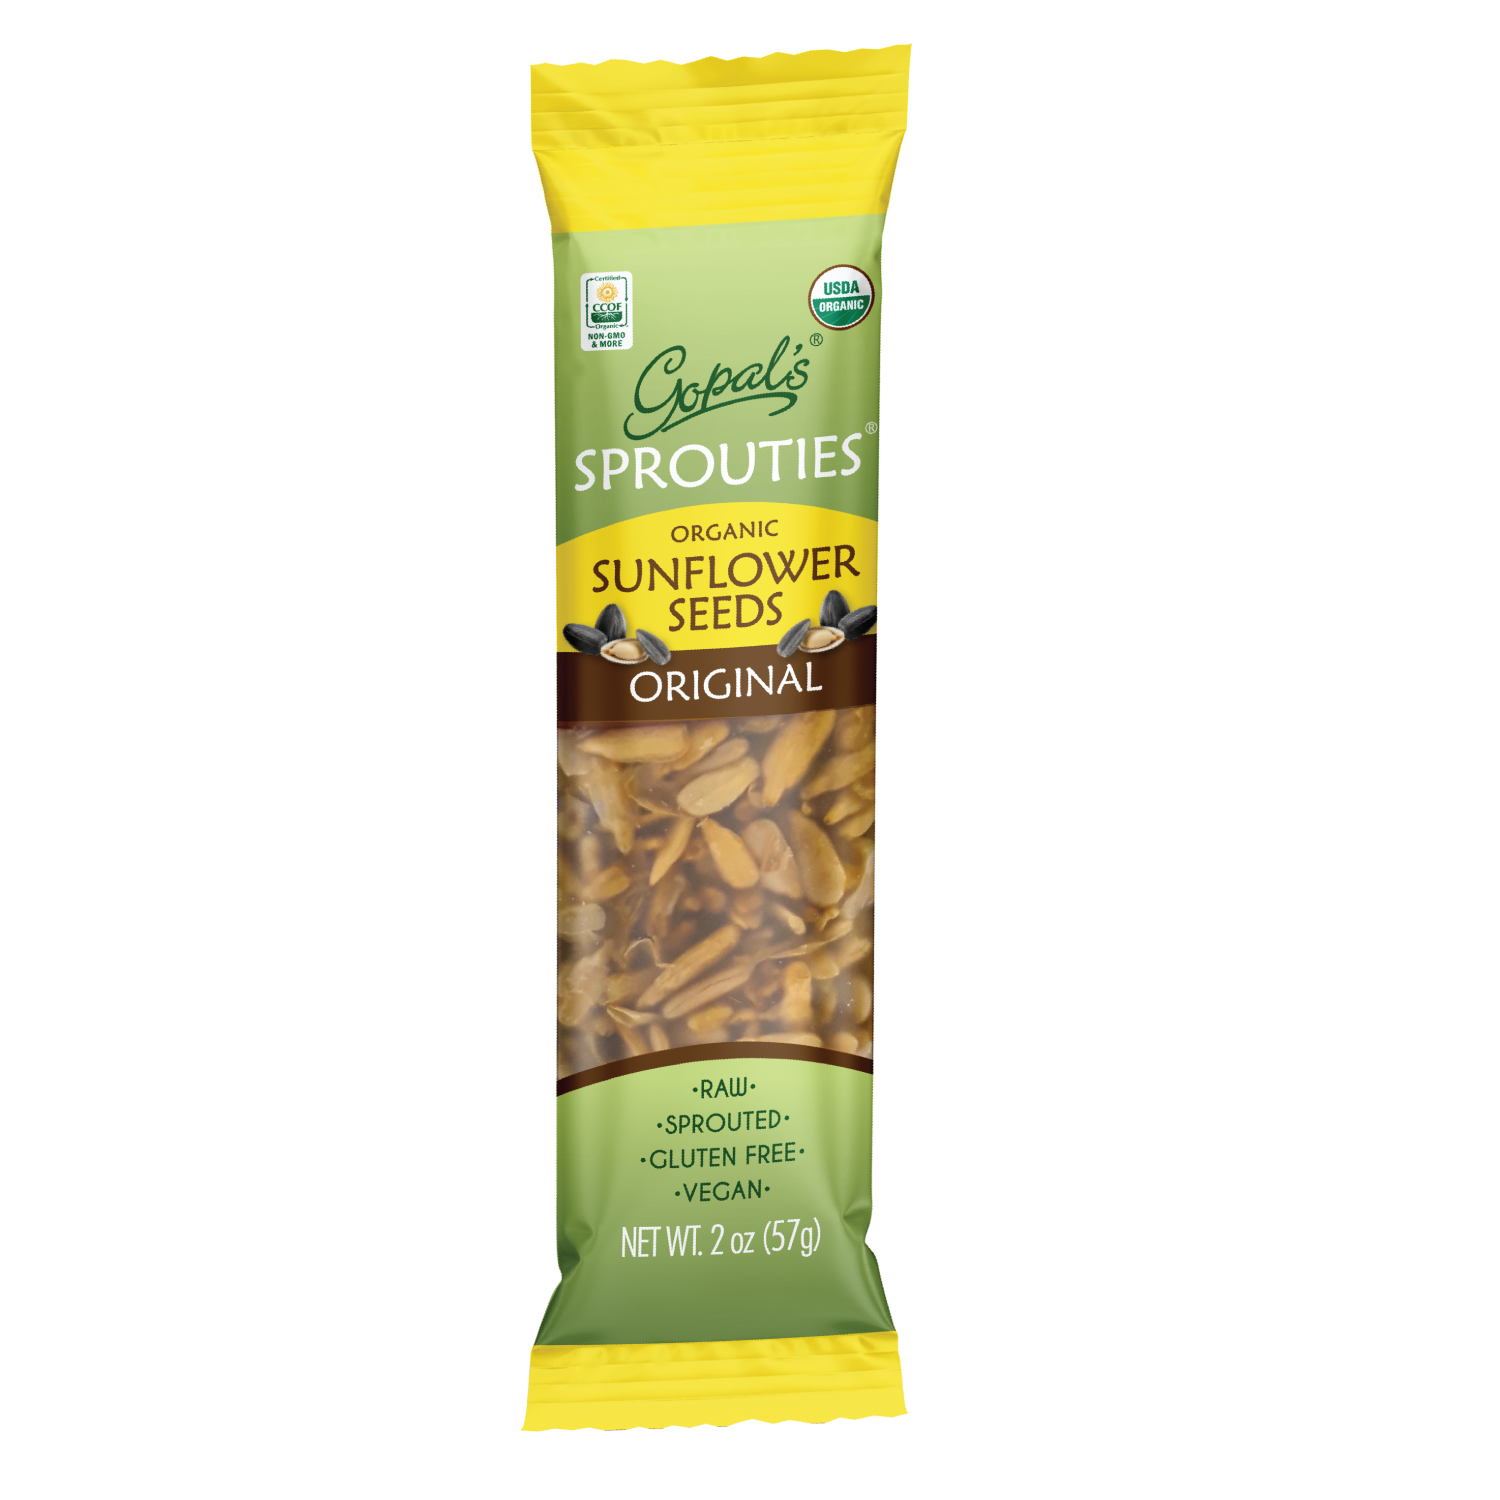 Original Sunflower Seed Sprouties®